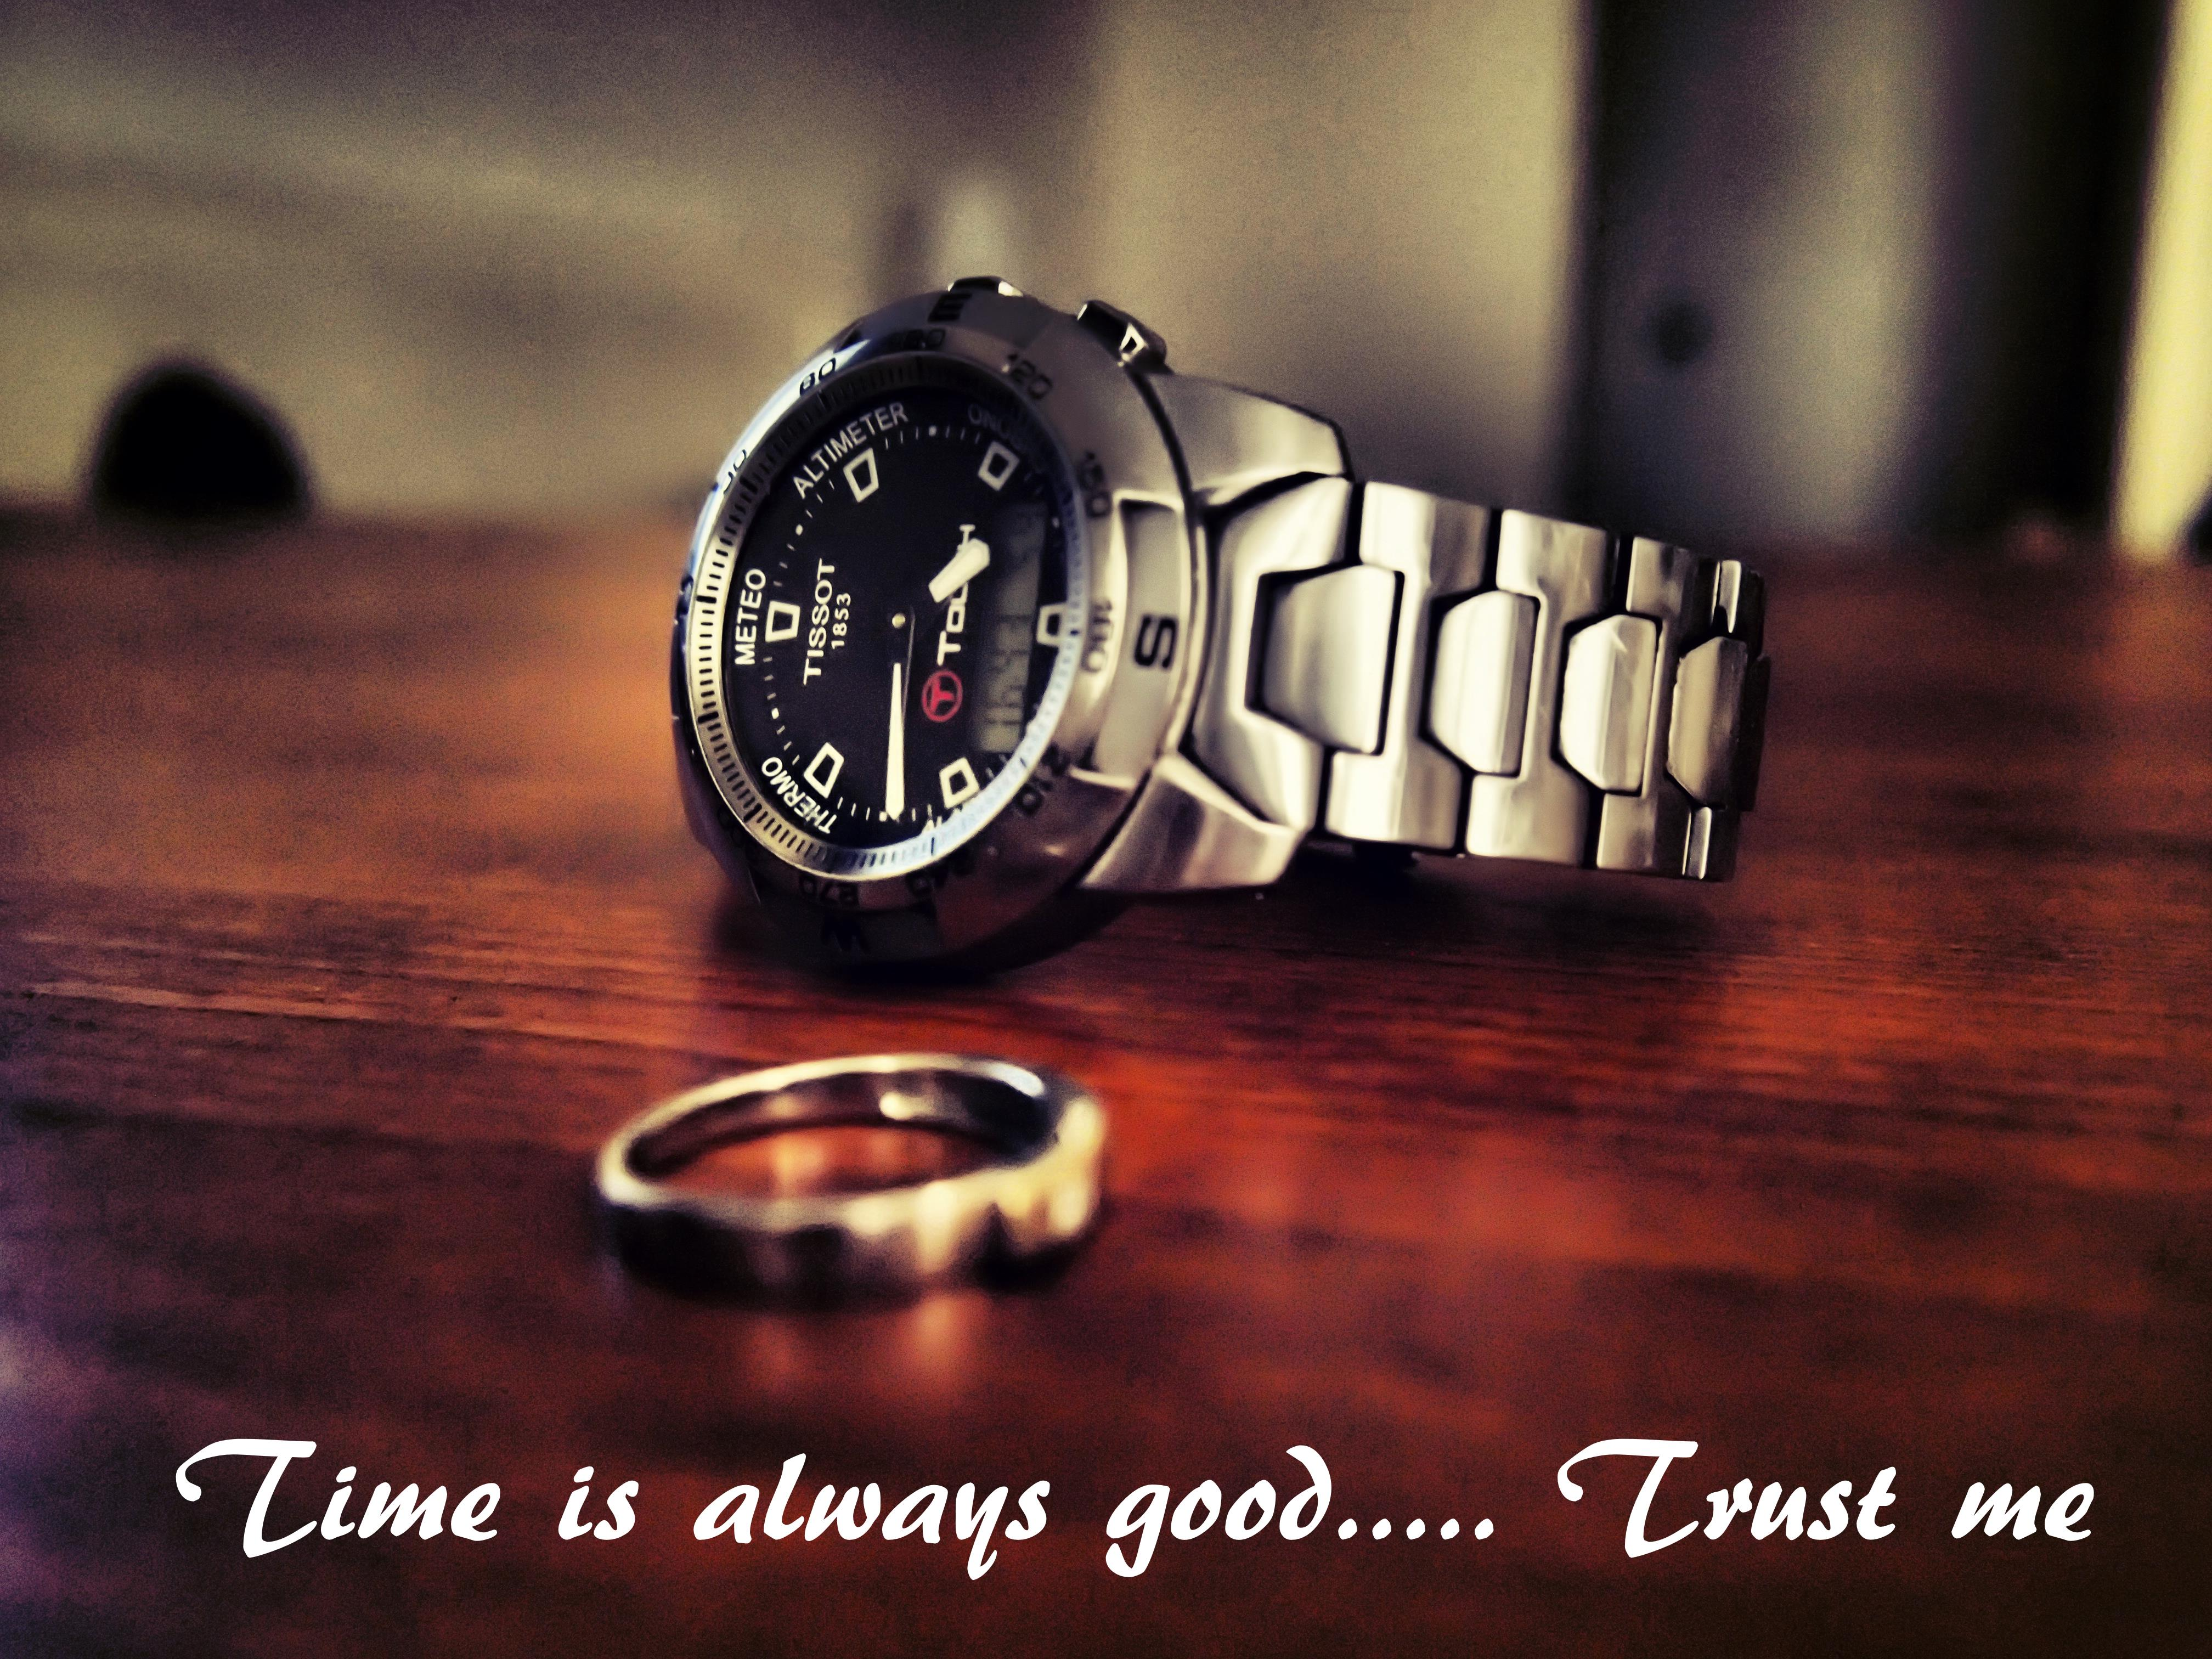 Pilot Quotes Wallpapers Time Management Quotes Amp Hd Wallpapers For Bloggers